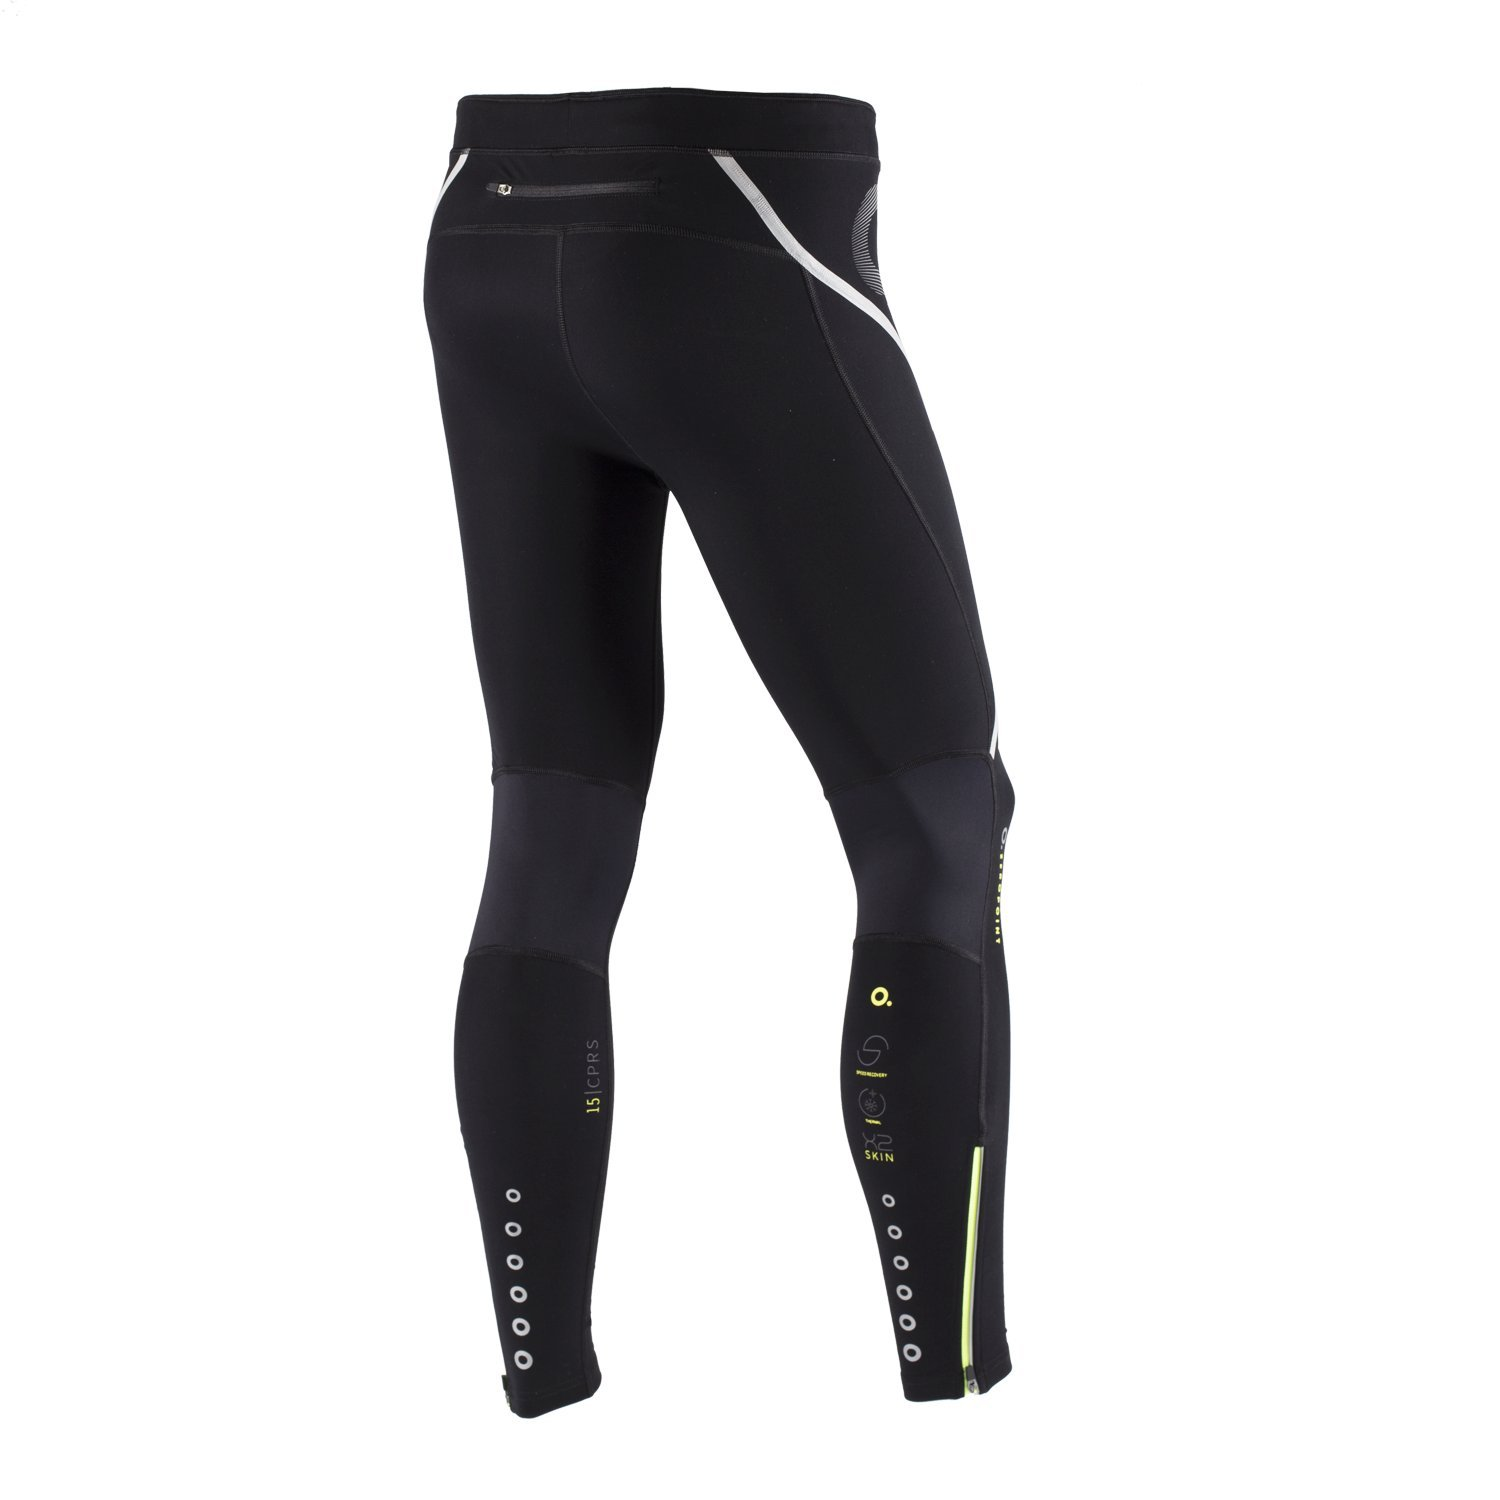 c5c536df26 Amazon.com: ZEROPOINT Men's Thermal Compression Tights 2.0: Sports &  Outdoors